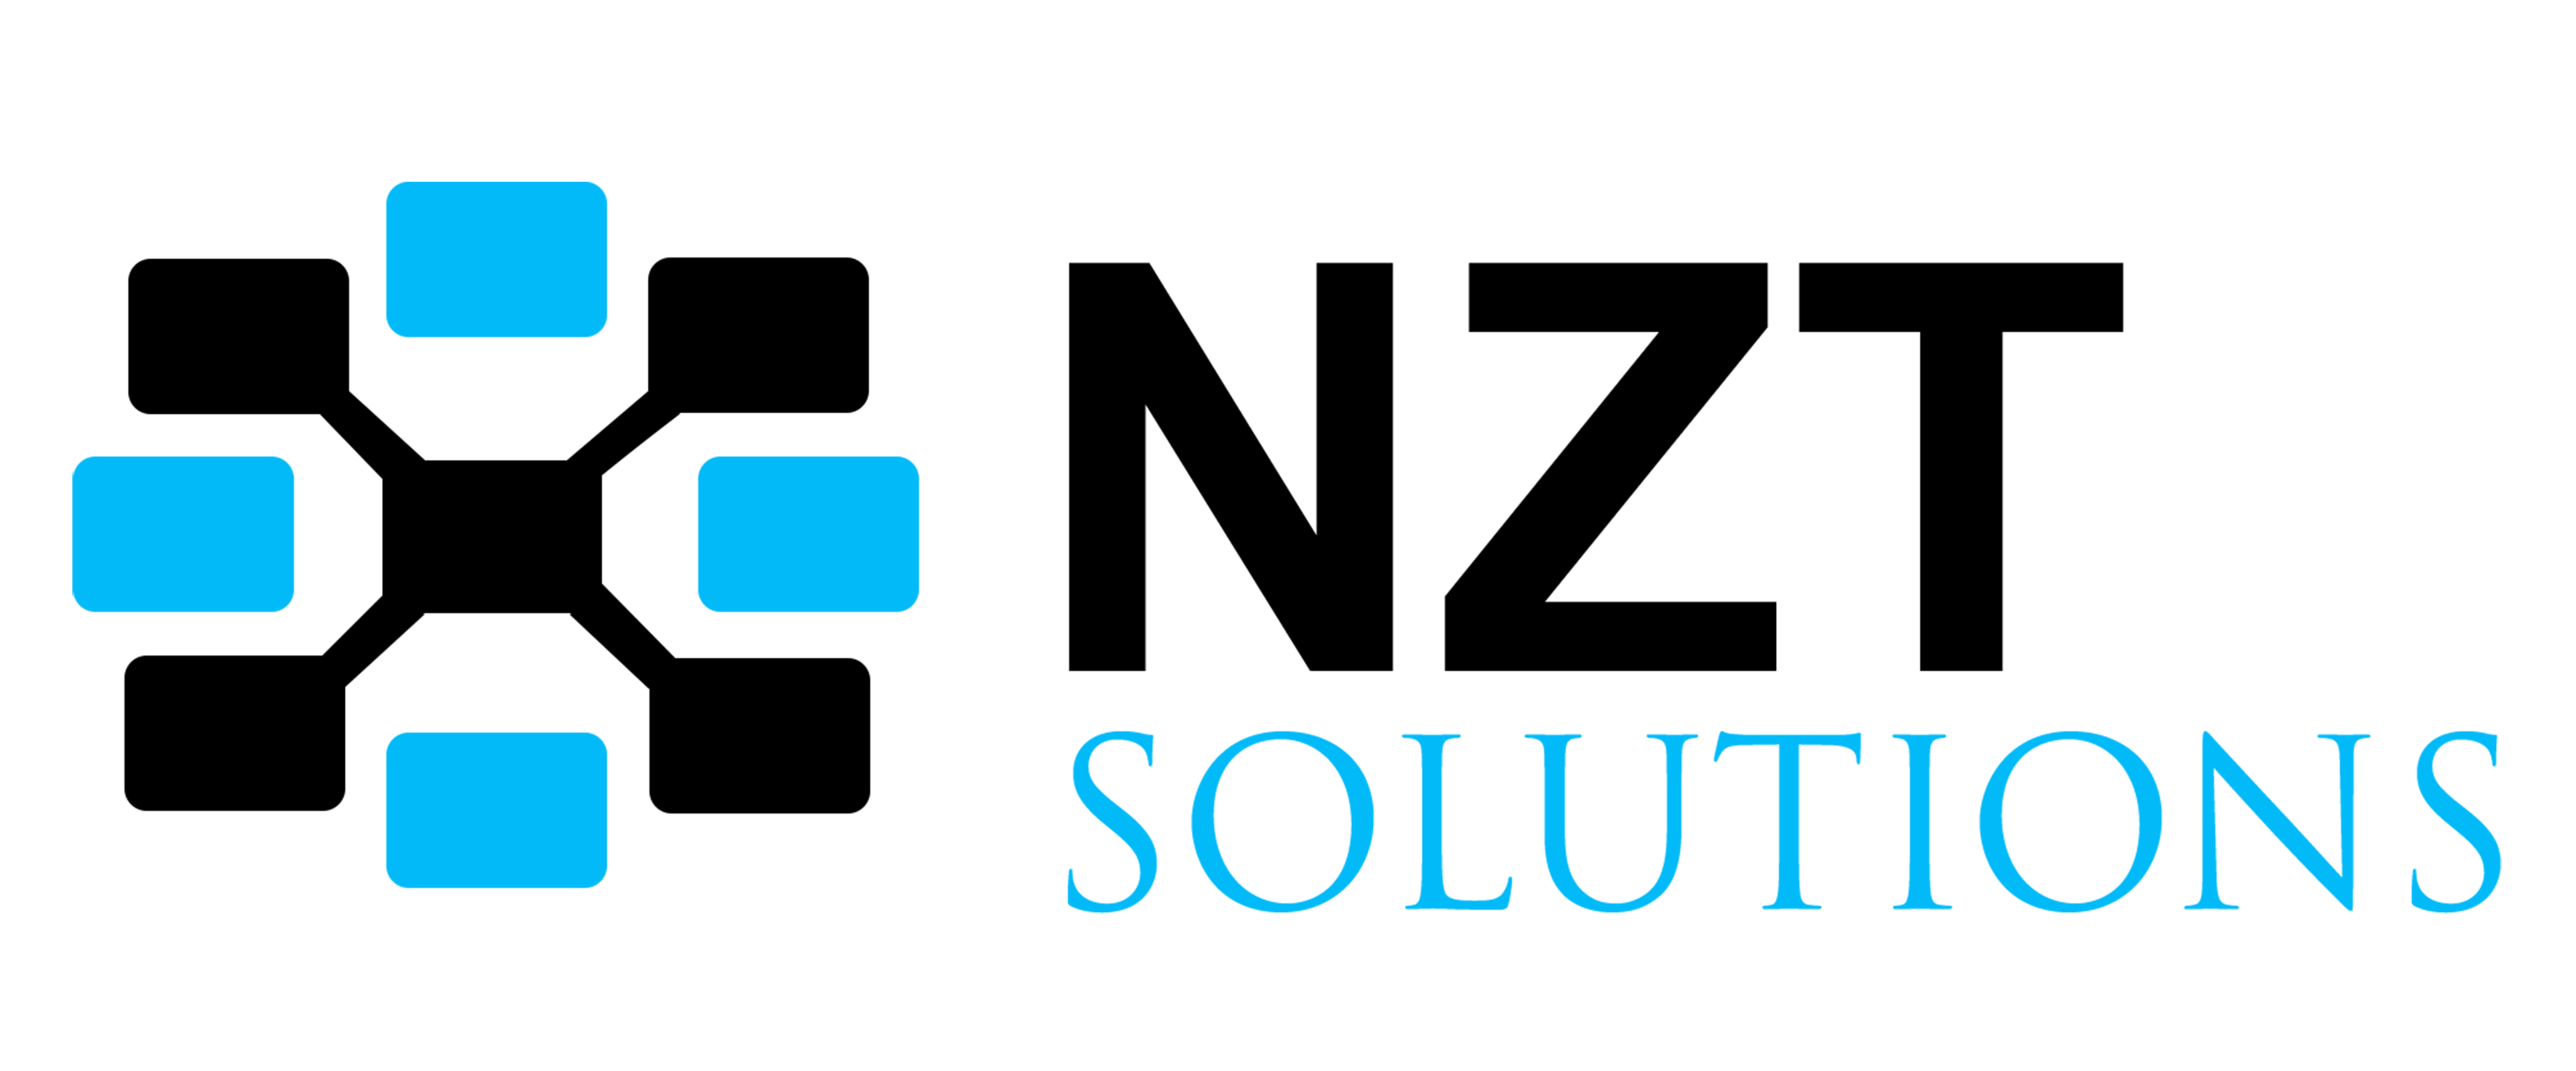 NZT Solutions Pvt. Ltd. - Out of Business Logo